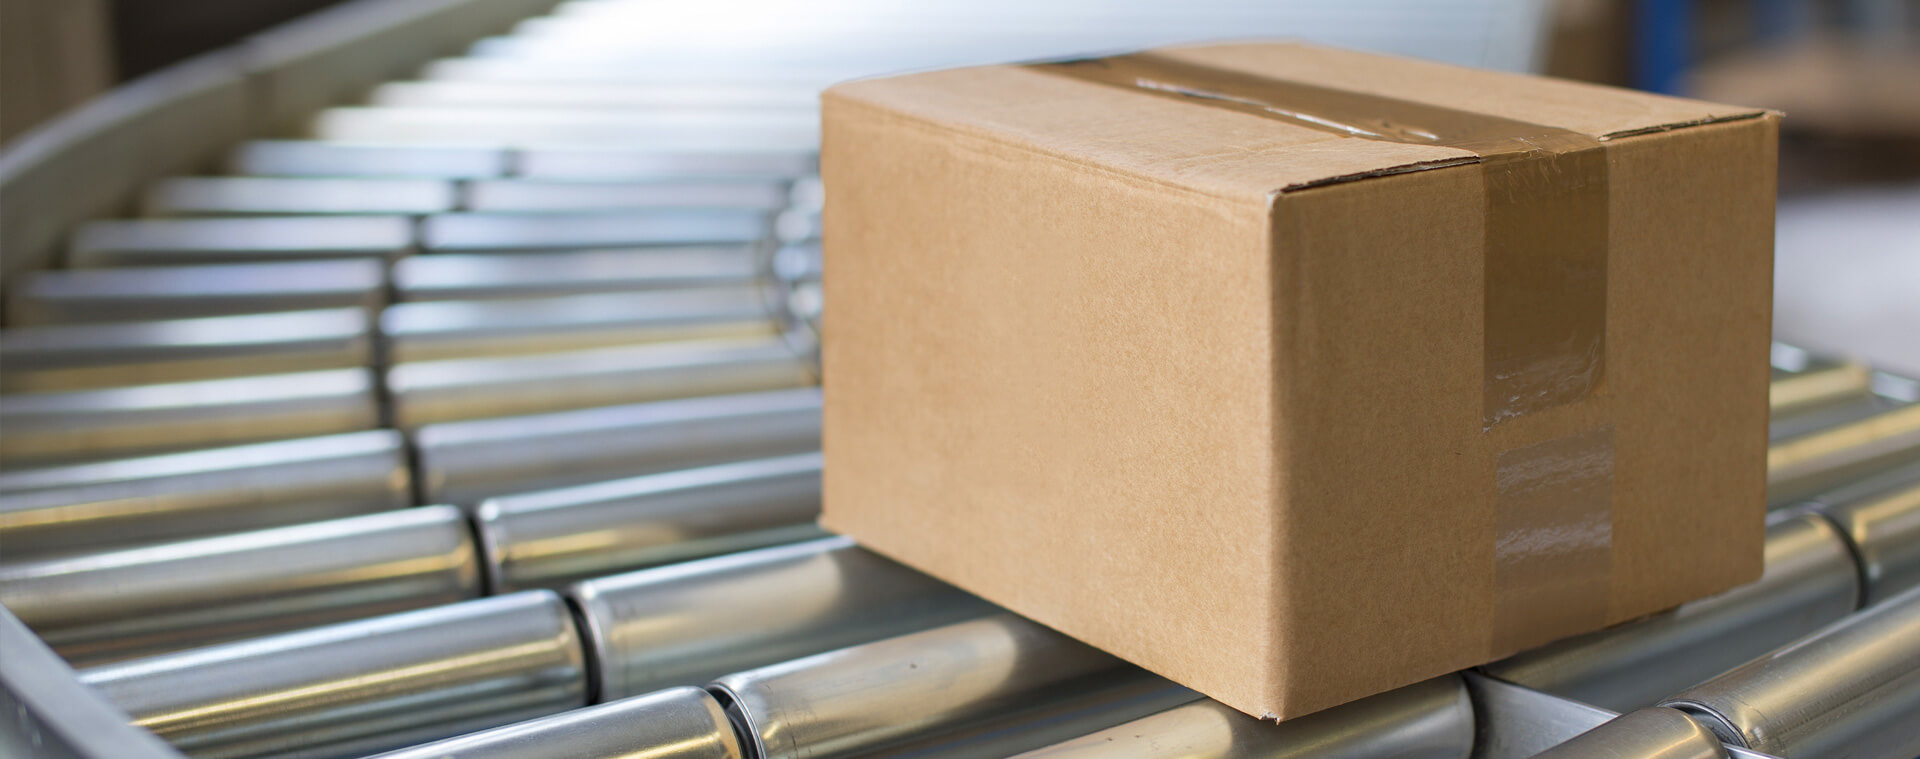 The Box Manufacturing Process Explained